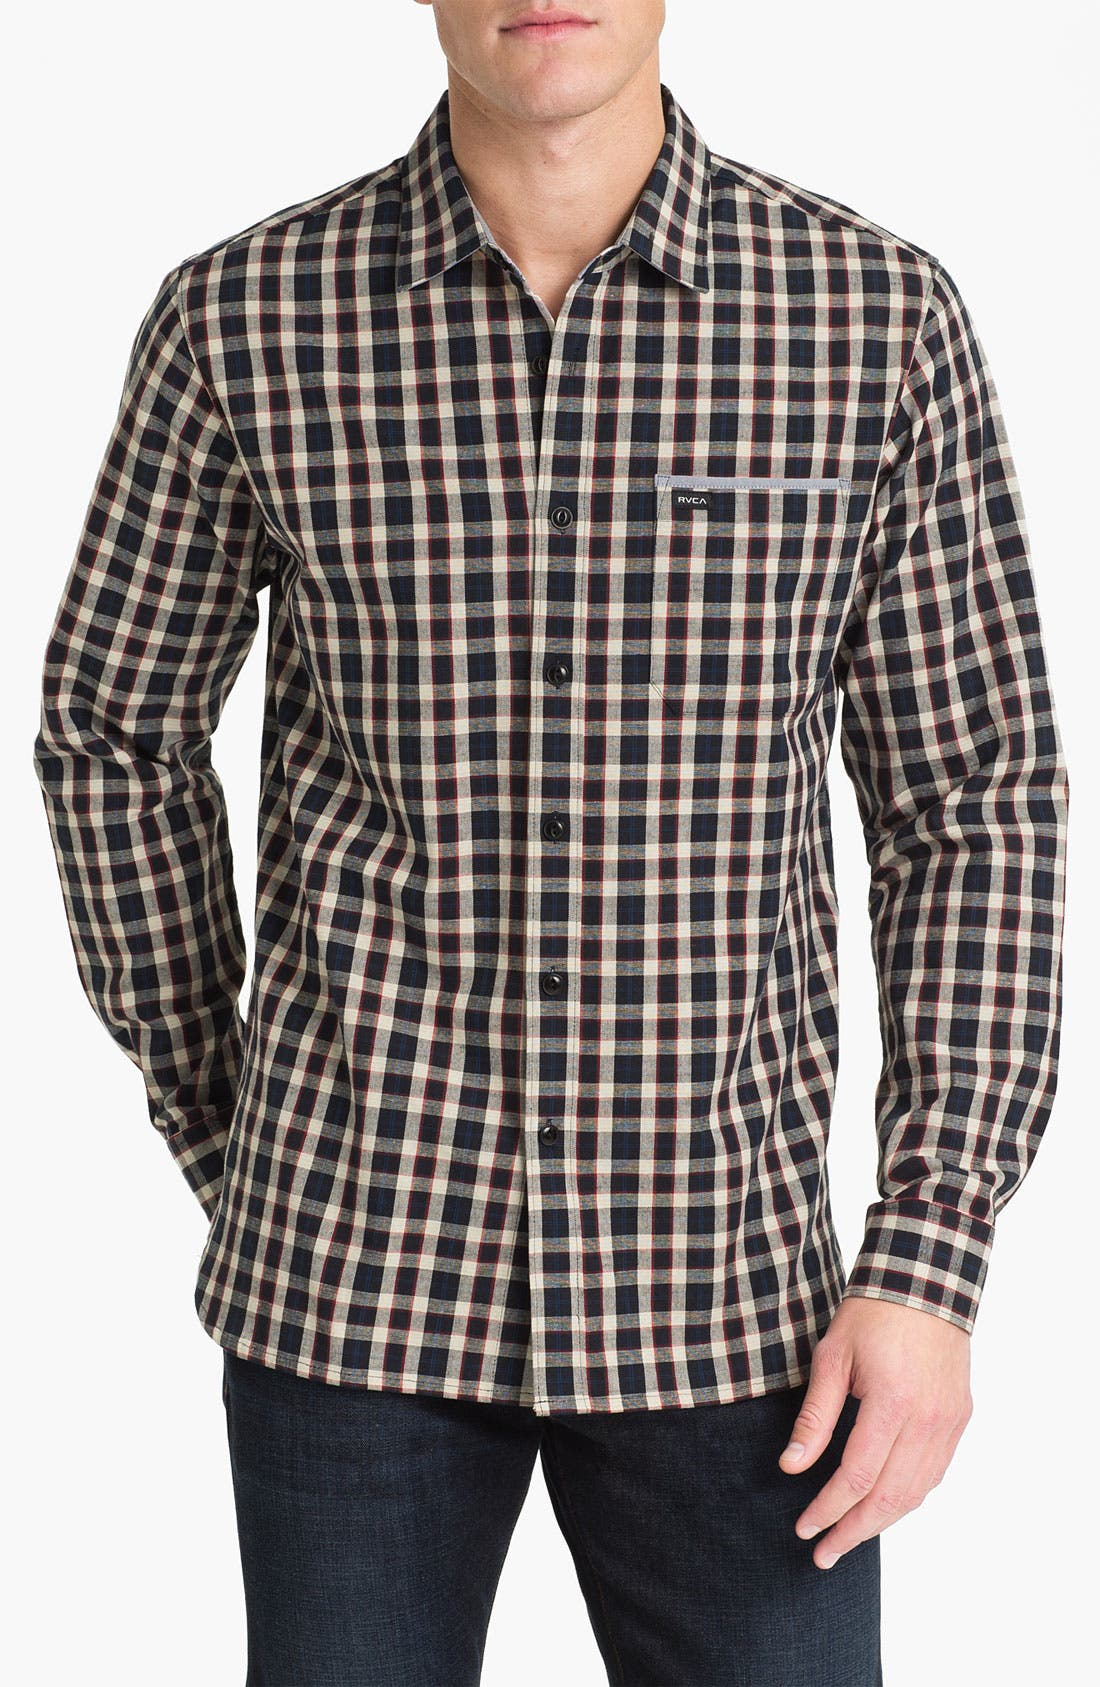 Alternate Image 1 Selected - RVCA 'Portman' Woven Shirt